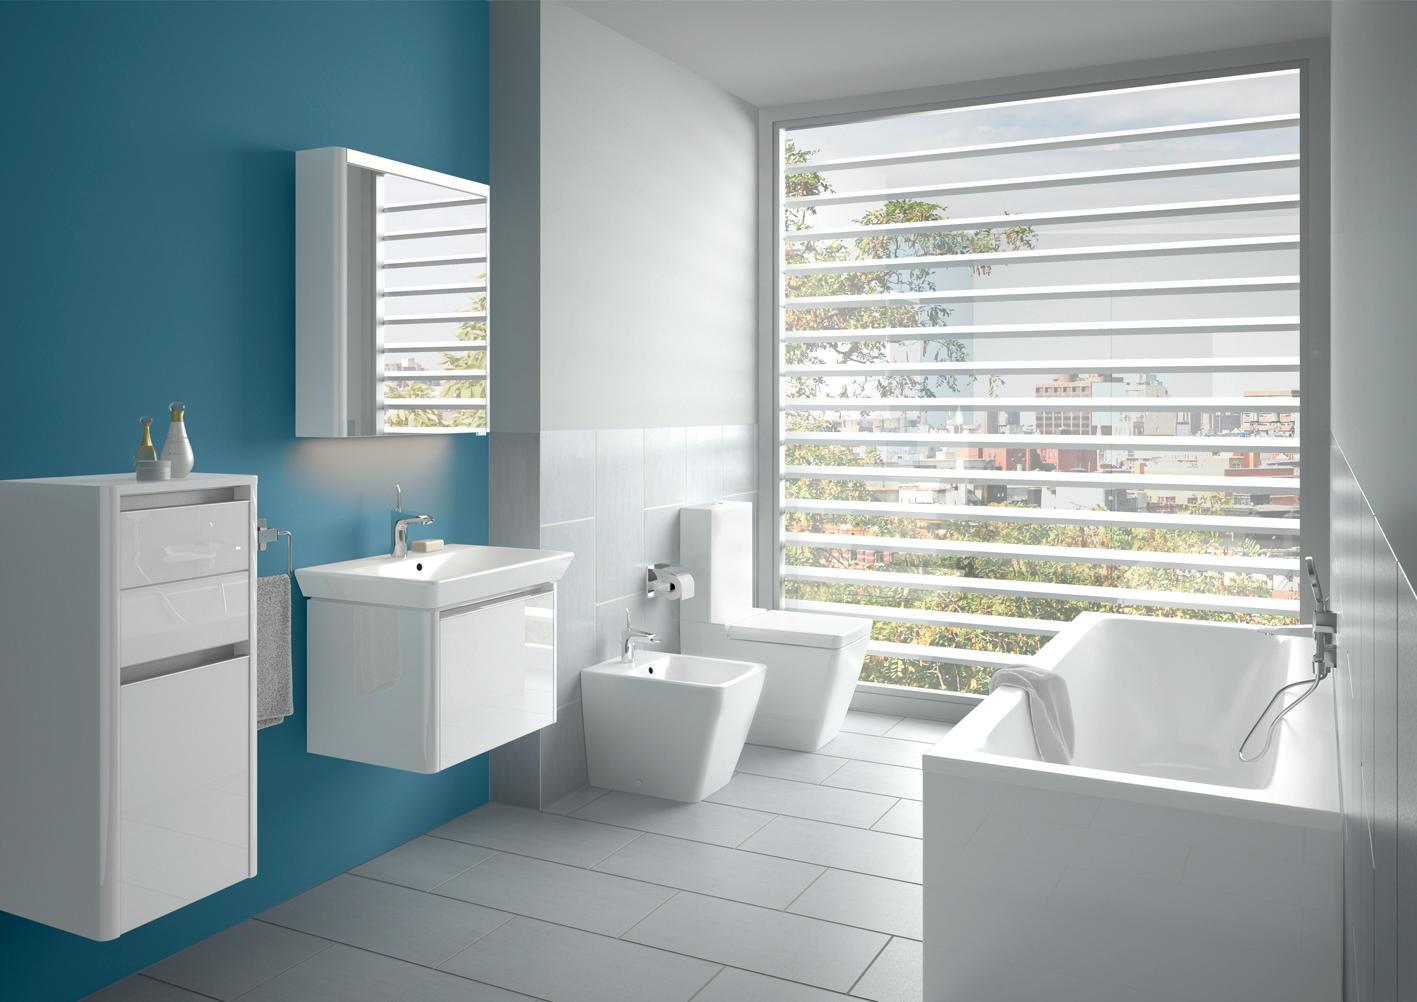 T4 WALL HUNG WC - WC from VitrA Bad | Architonic